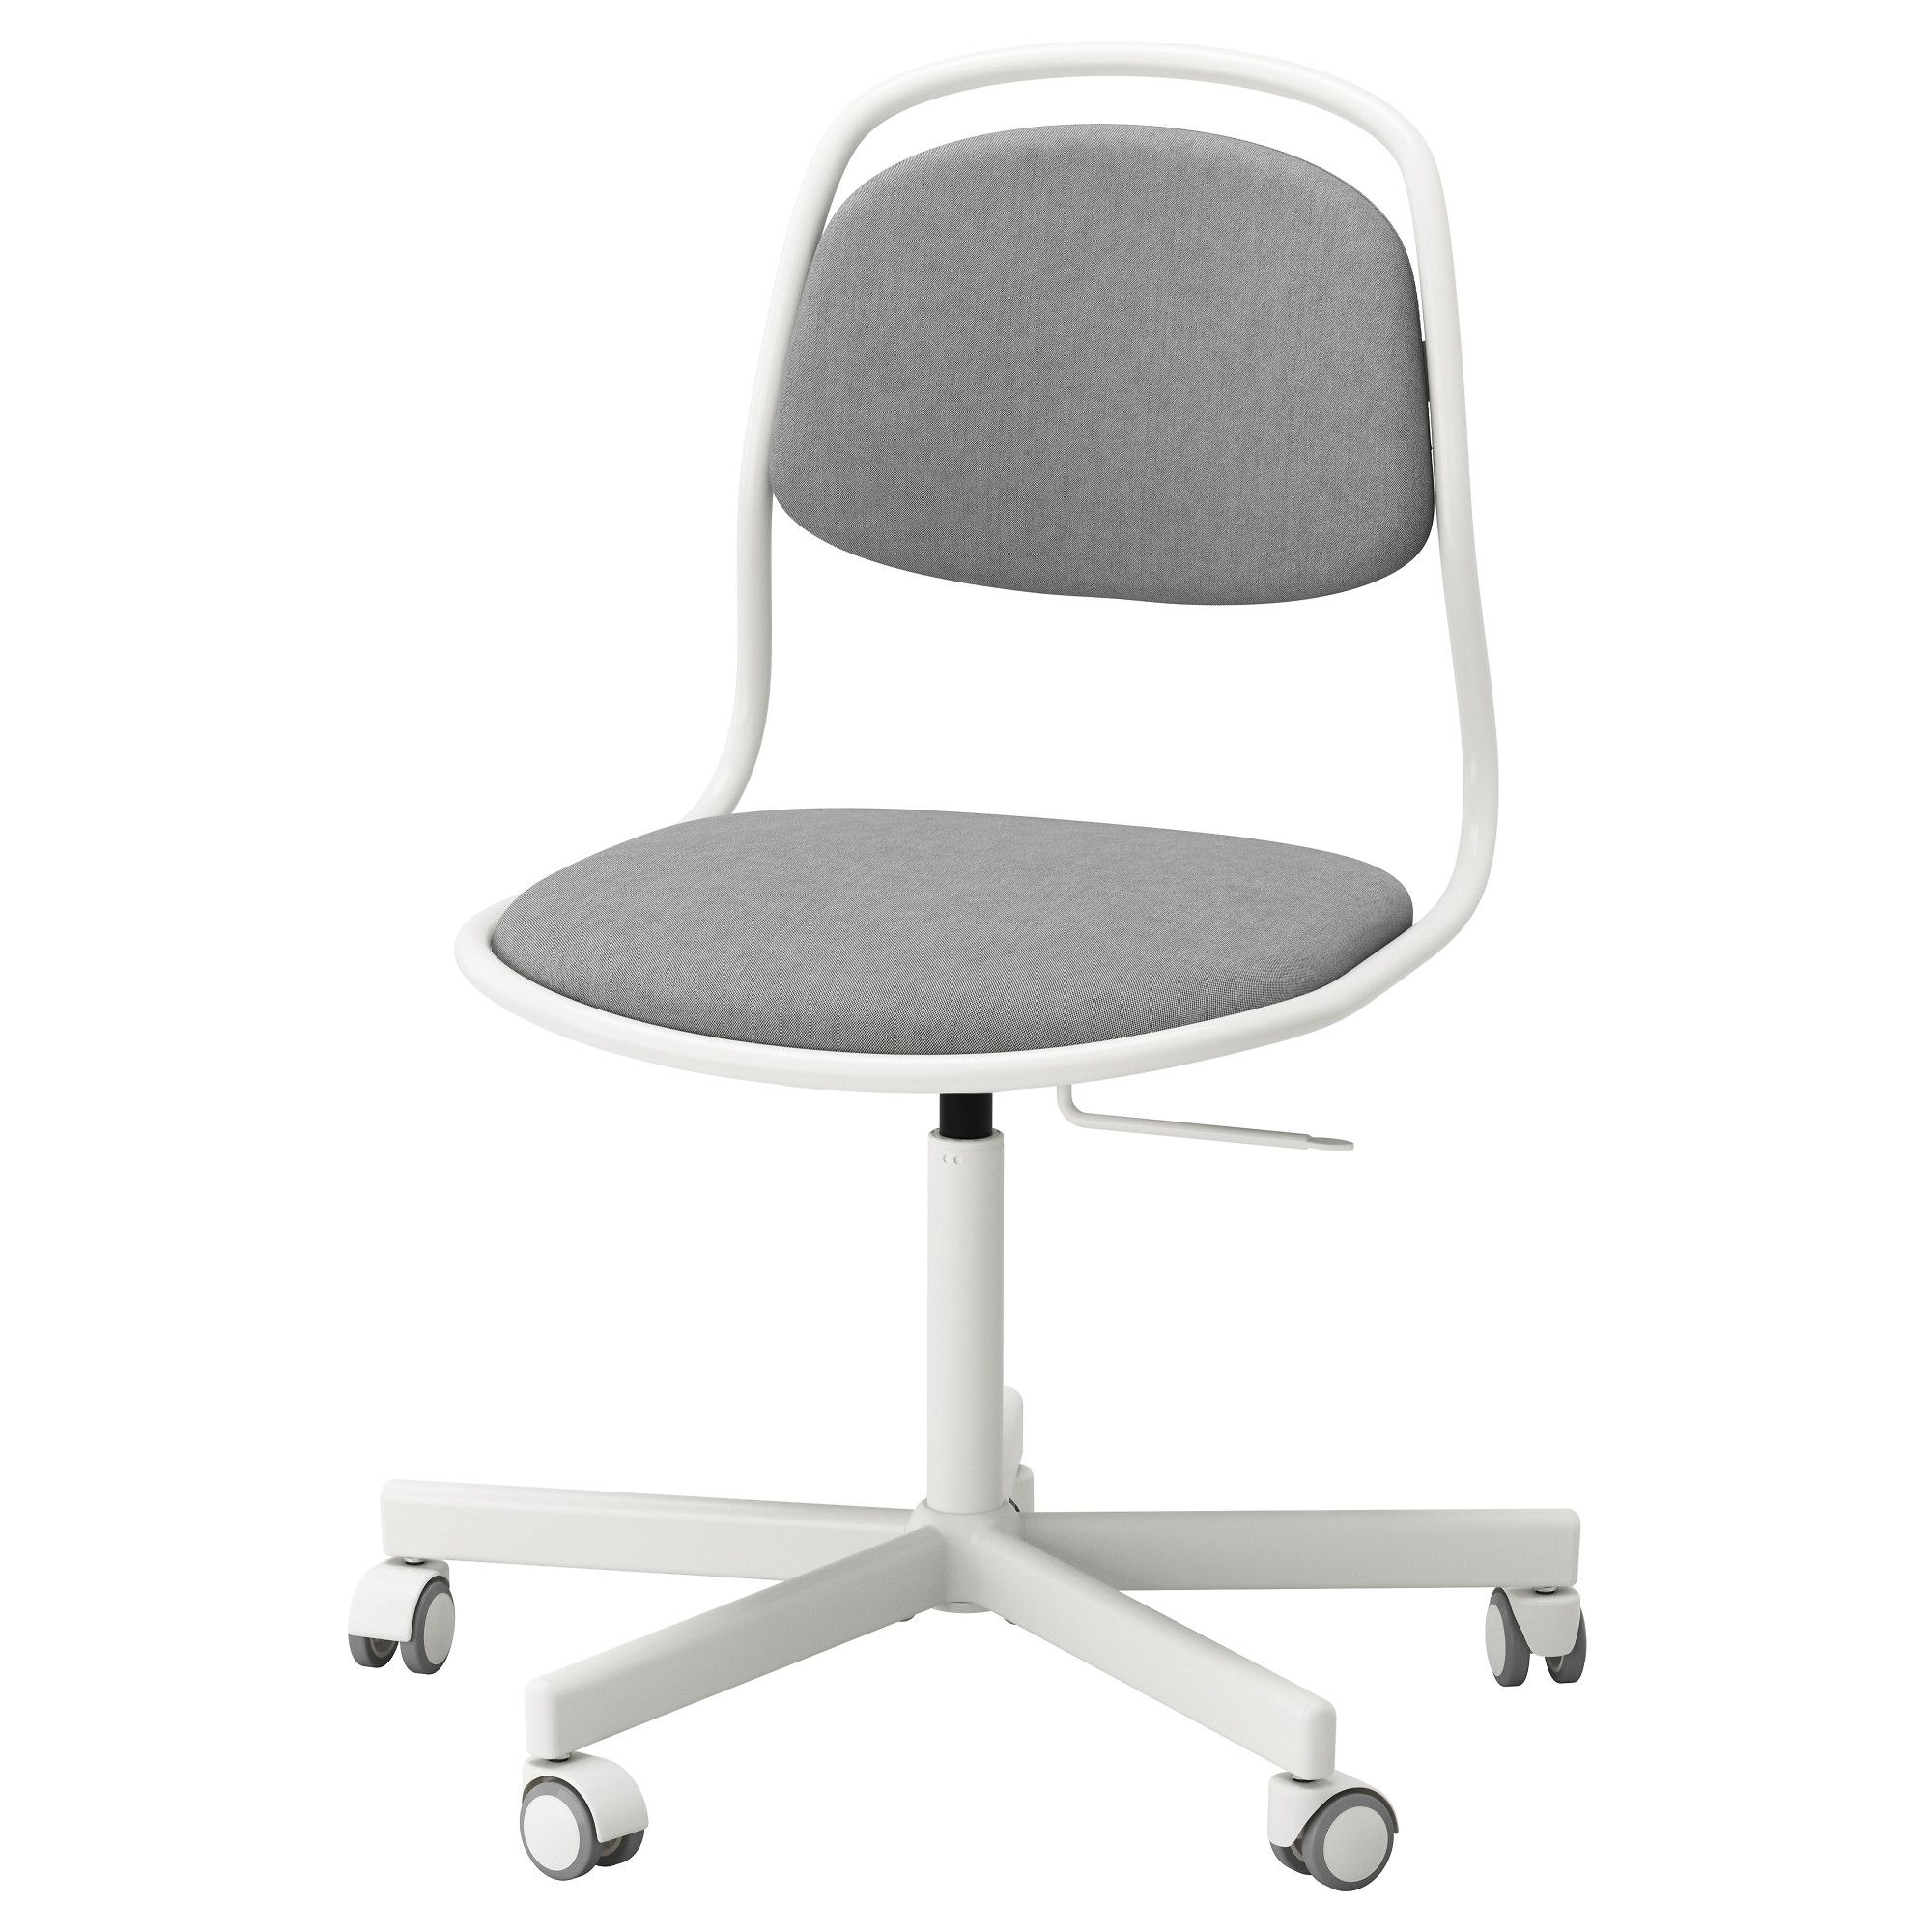 Ikea Mobler Inredning Och Inspiration Ikea Office Chair Chair Cool Desk Chairs